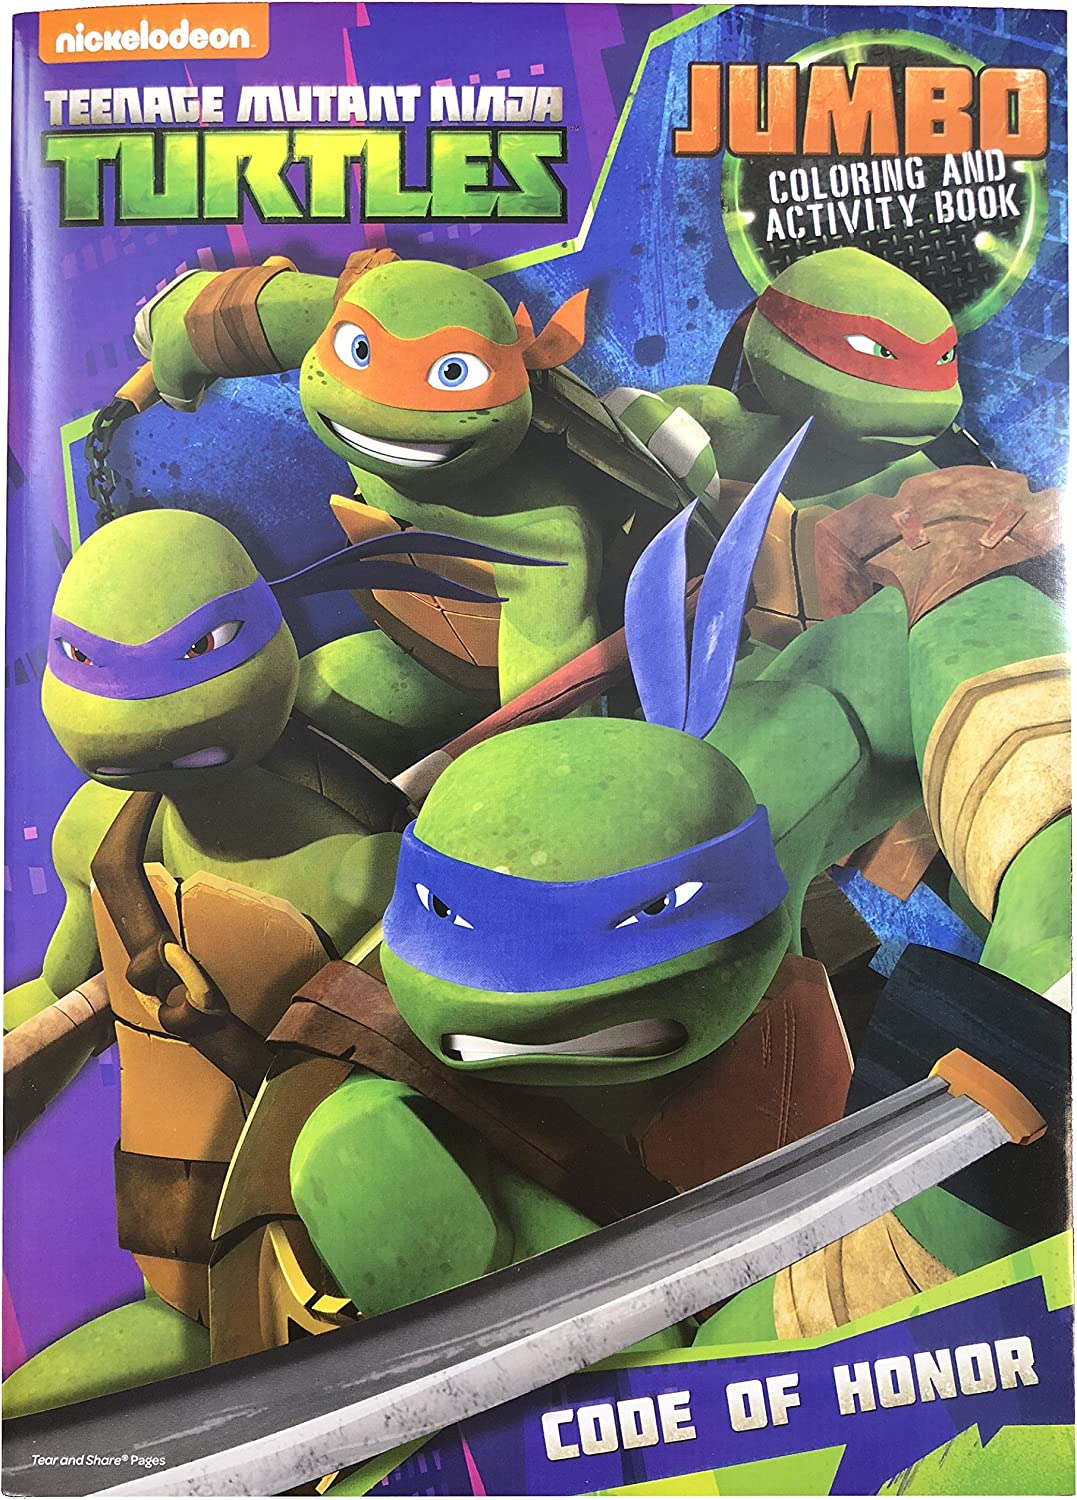 Teenage Mutant Ninja Turtles Jumbo Coloring and Activity Book 96-Page (1 Book) Assorted Action Themes